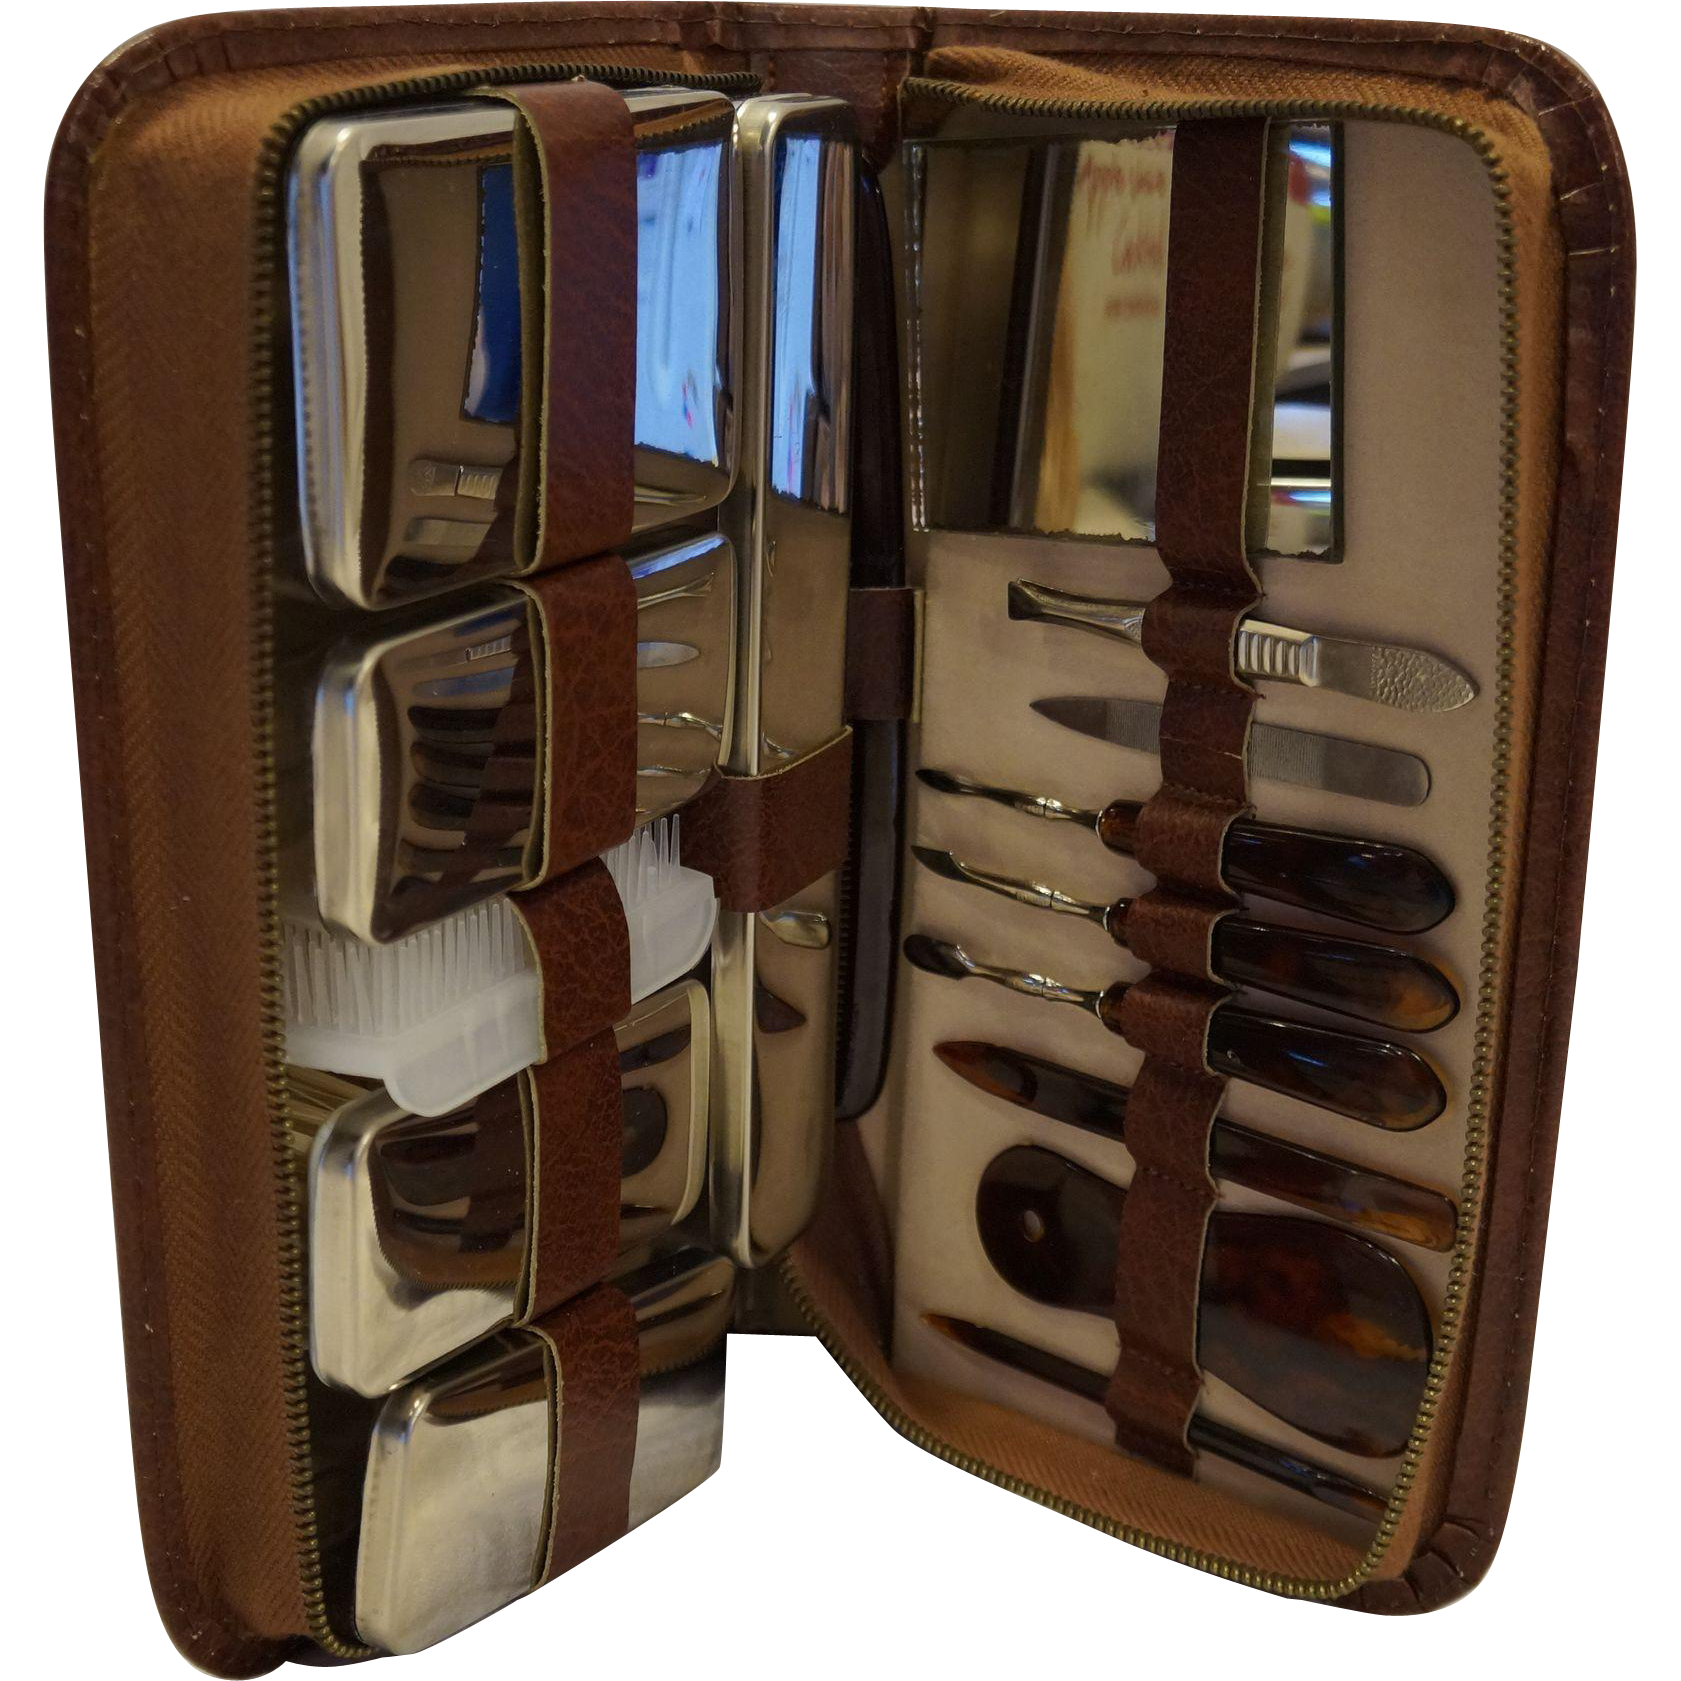 Vanity Travel Grooming Set 16 Pieces West Germany Complete Leather Zippered Case